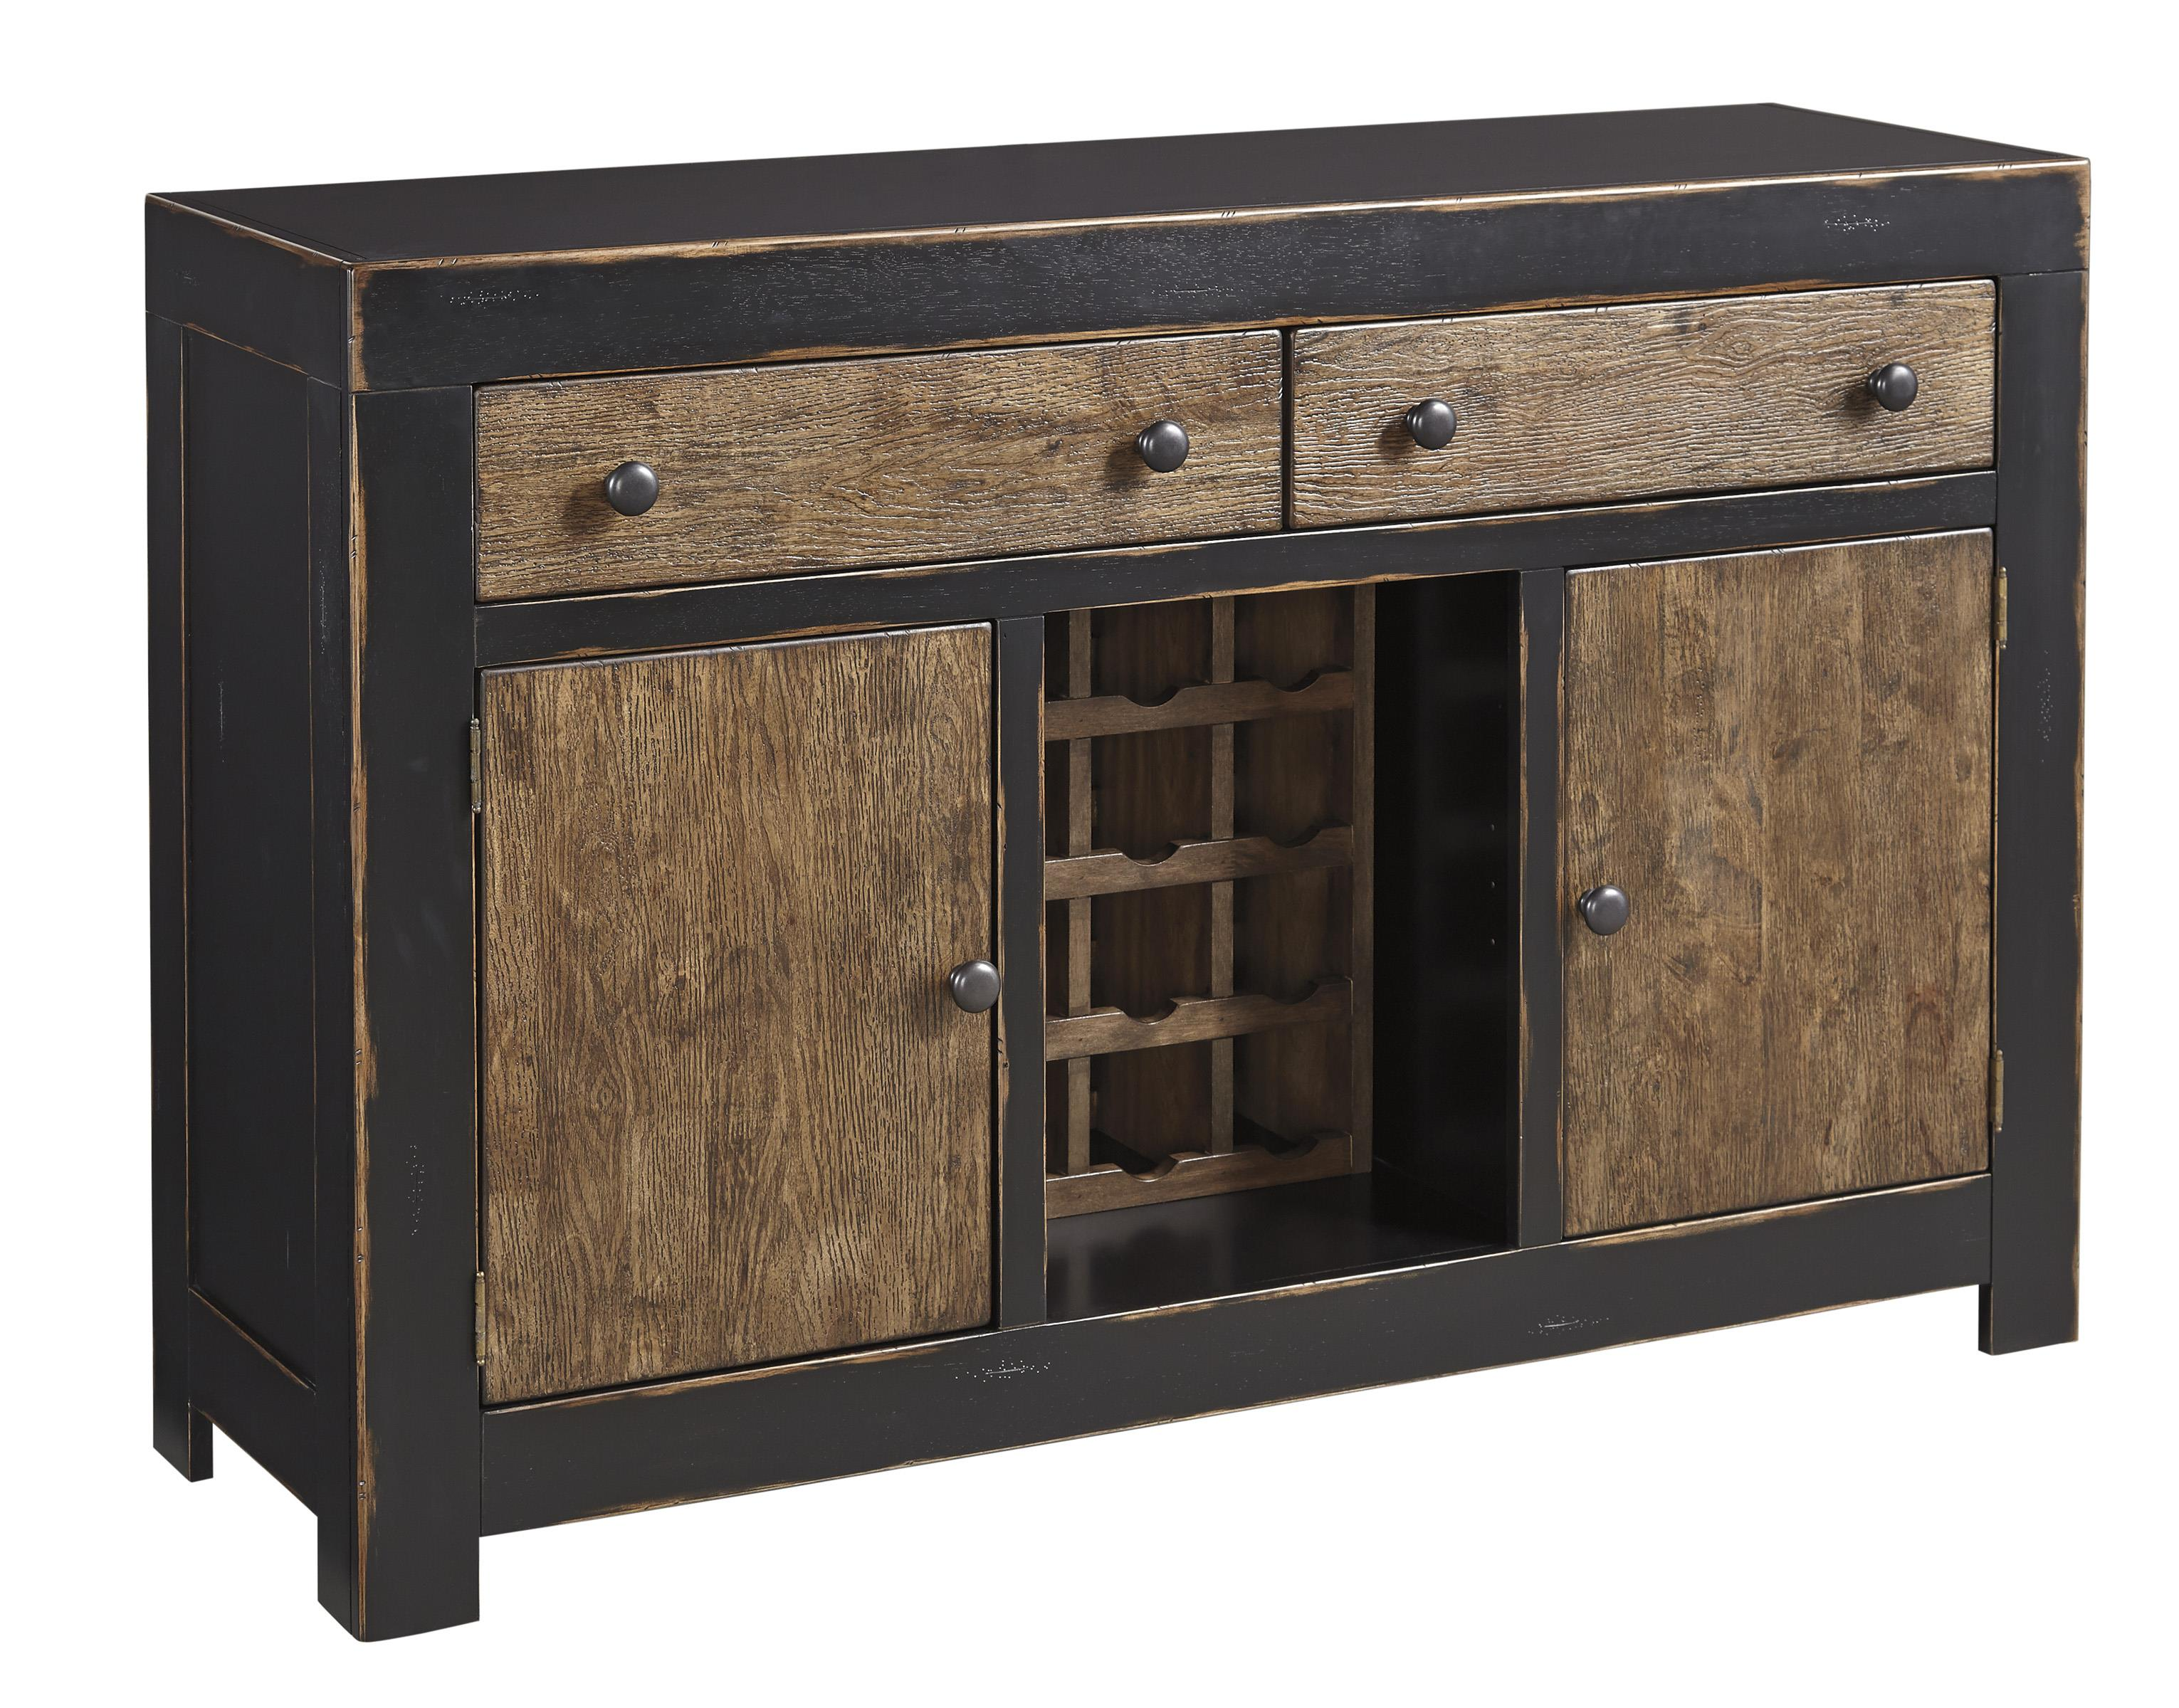 Signature Design by Ashley Emerfield Dining Room Server - Item Number: D563-60